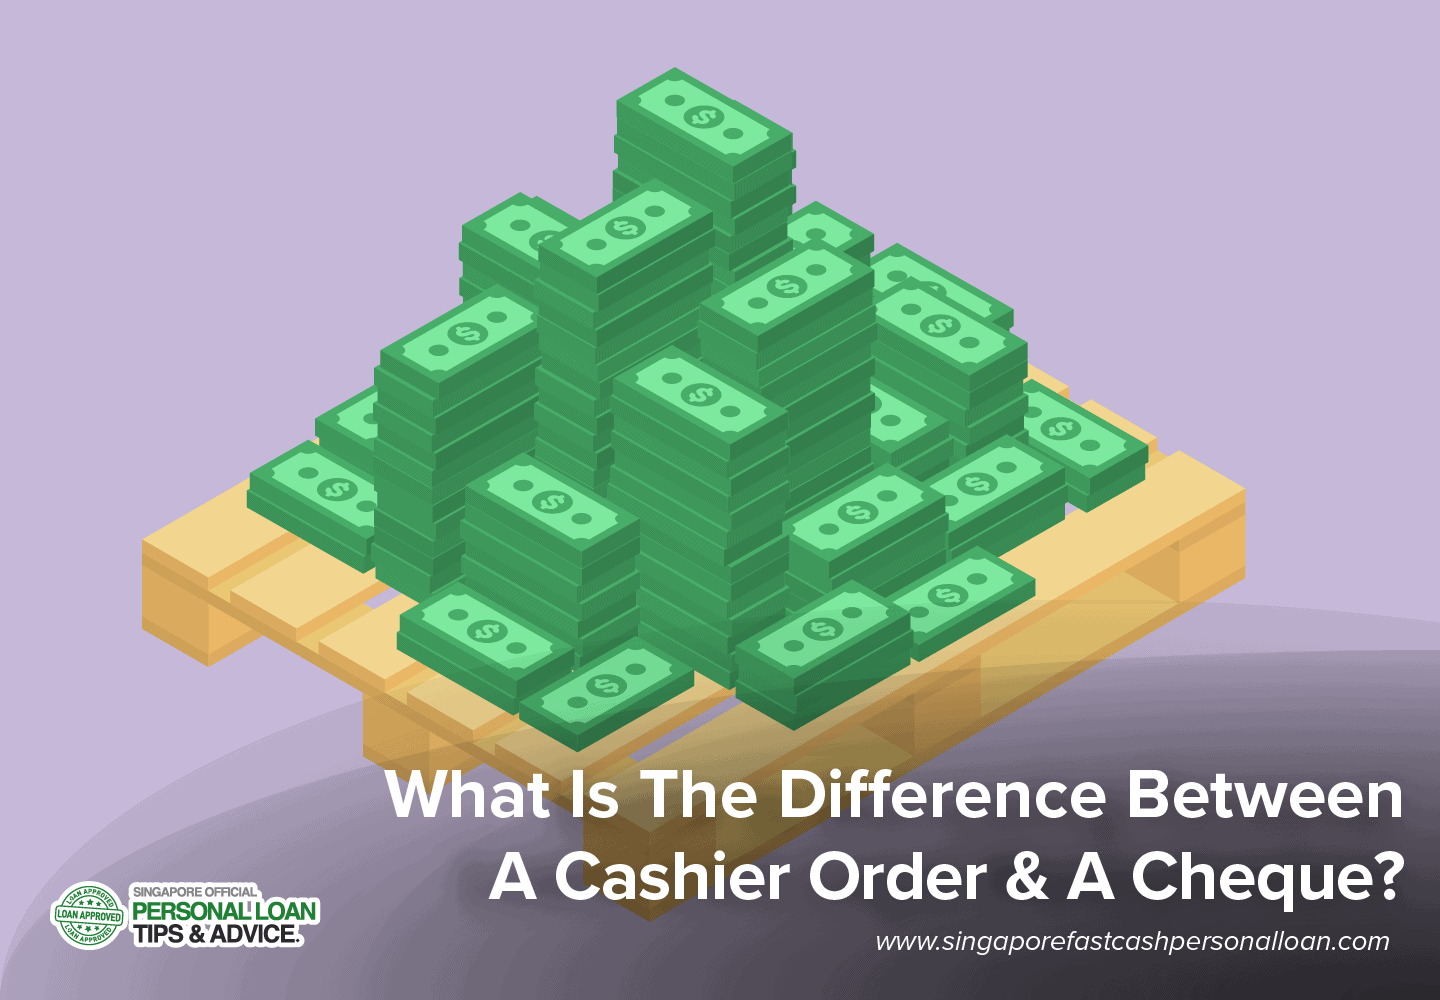 What Is The Difference Between A Cashier Order & A Cheque